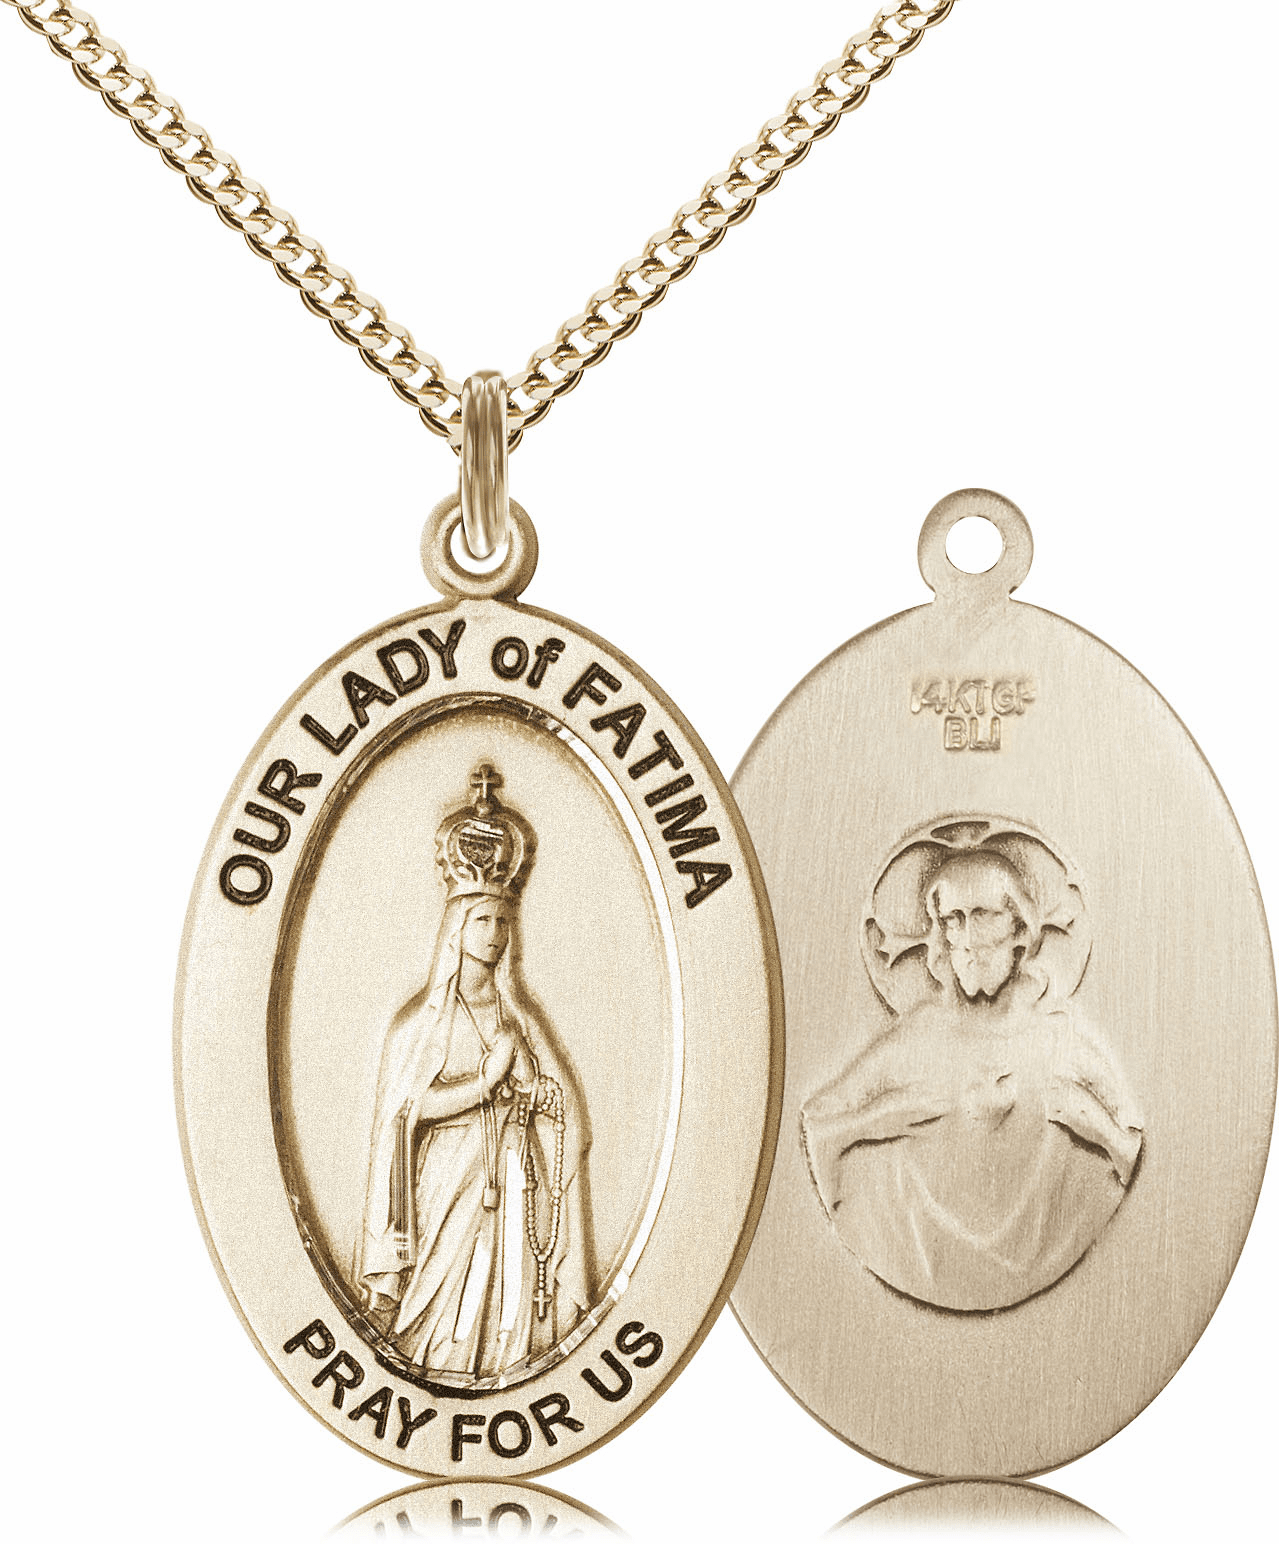 Bliss Mfg Our Lady of Fatima 14kt Gold-filled Medal Necklace w/Chain